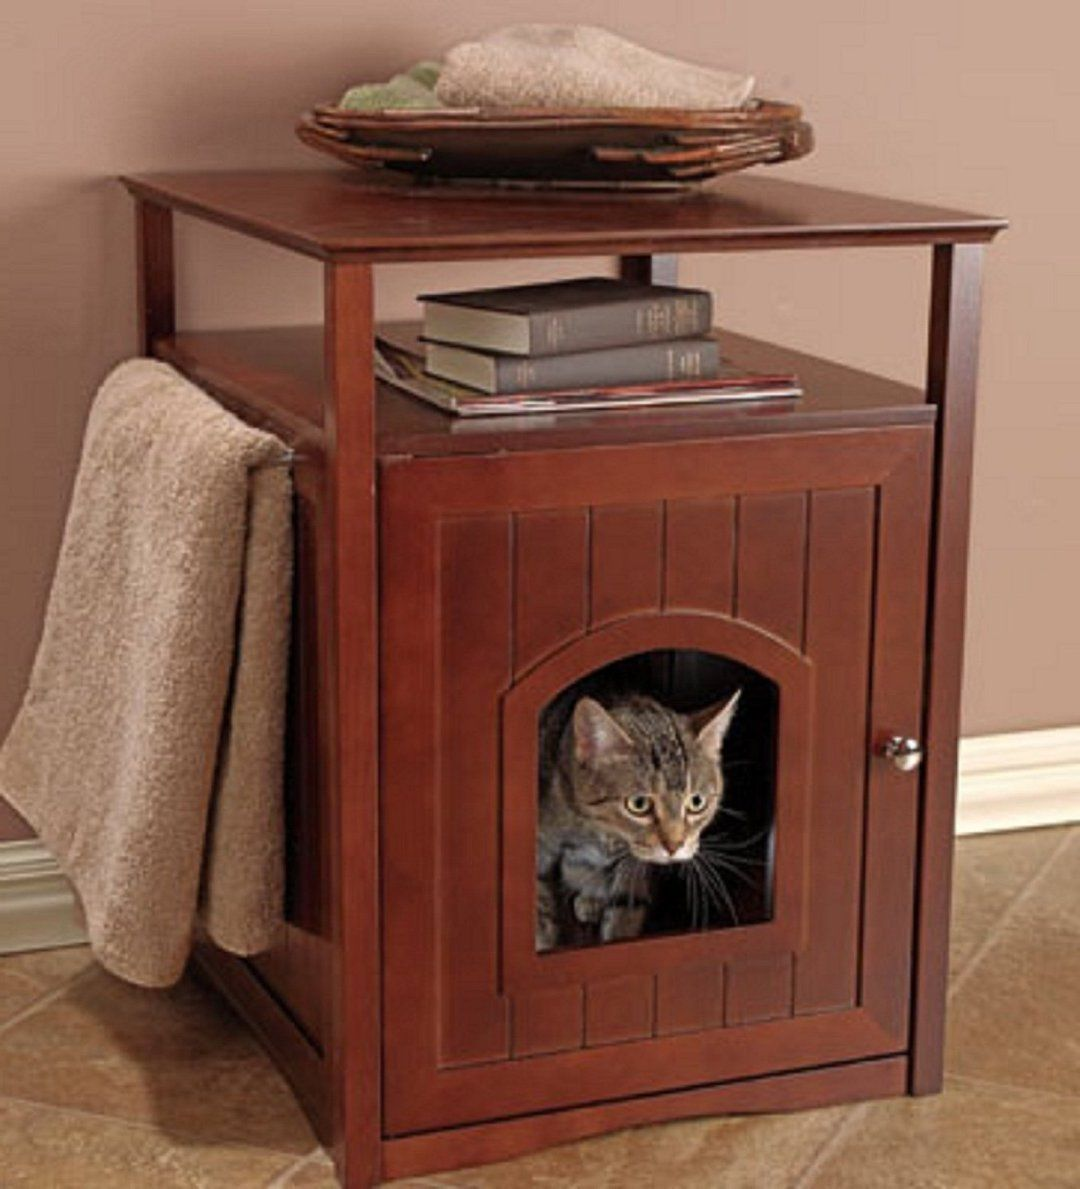 Basic Nutrition For Cats (With images) Cat furniture